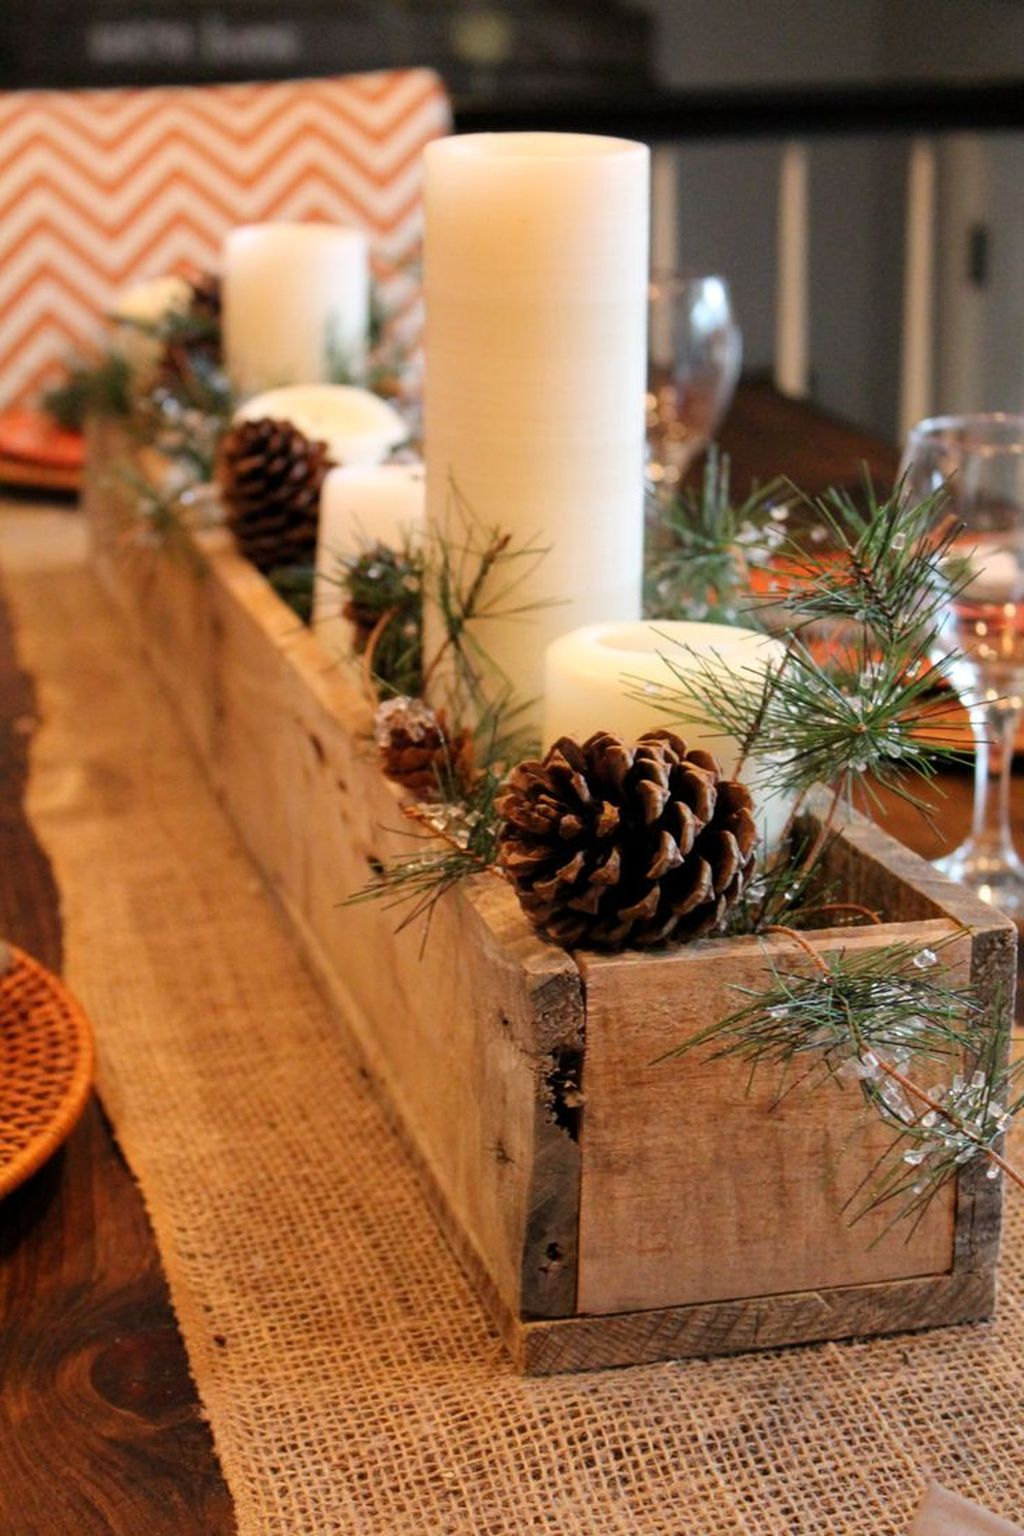 Inspiring Modern Rustic Christmas Centerpieces Ideas With Candles 20